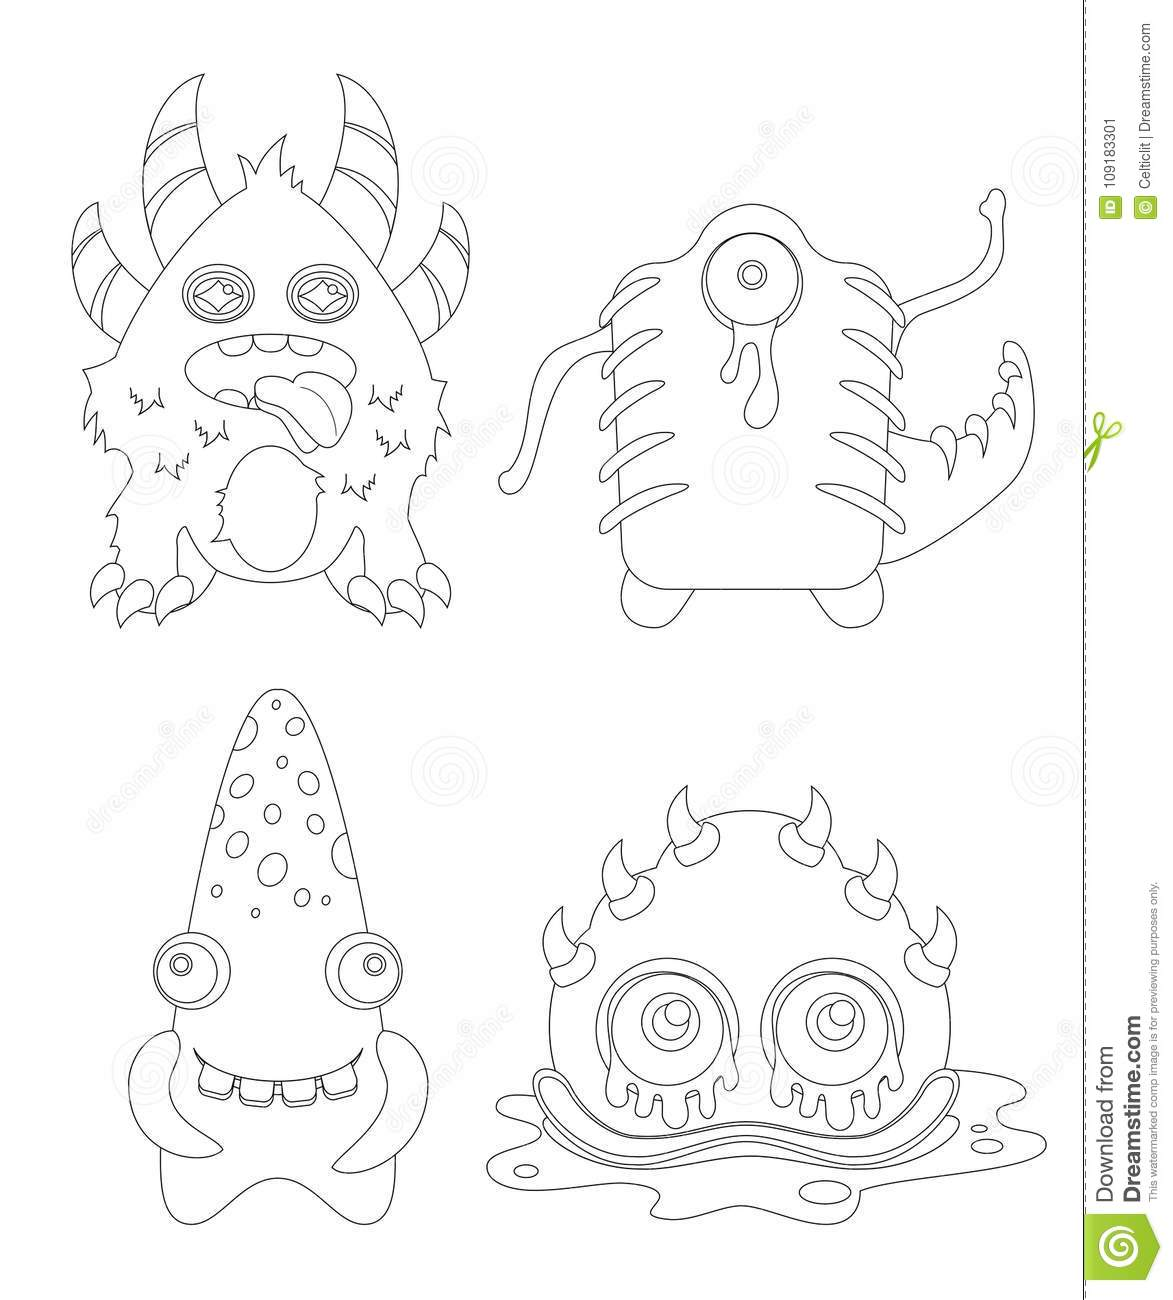 Childrens Coloring Page With Funny Cartoon Monsters Stock